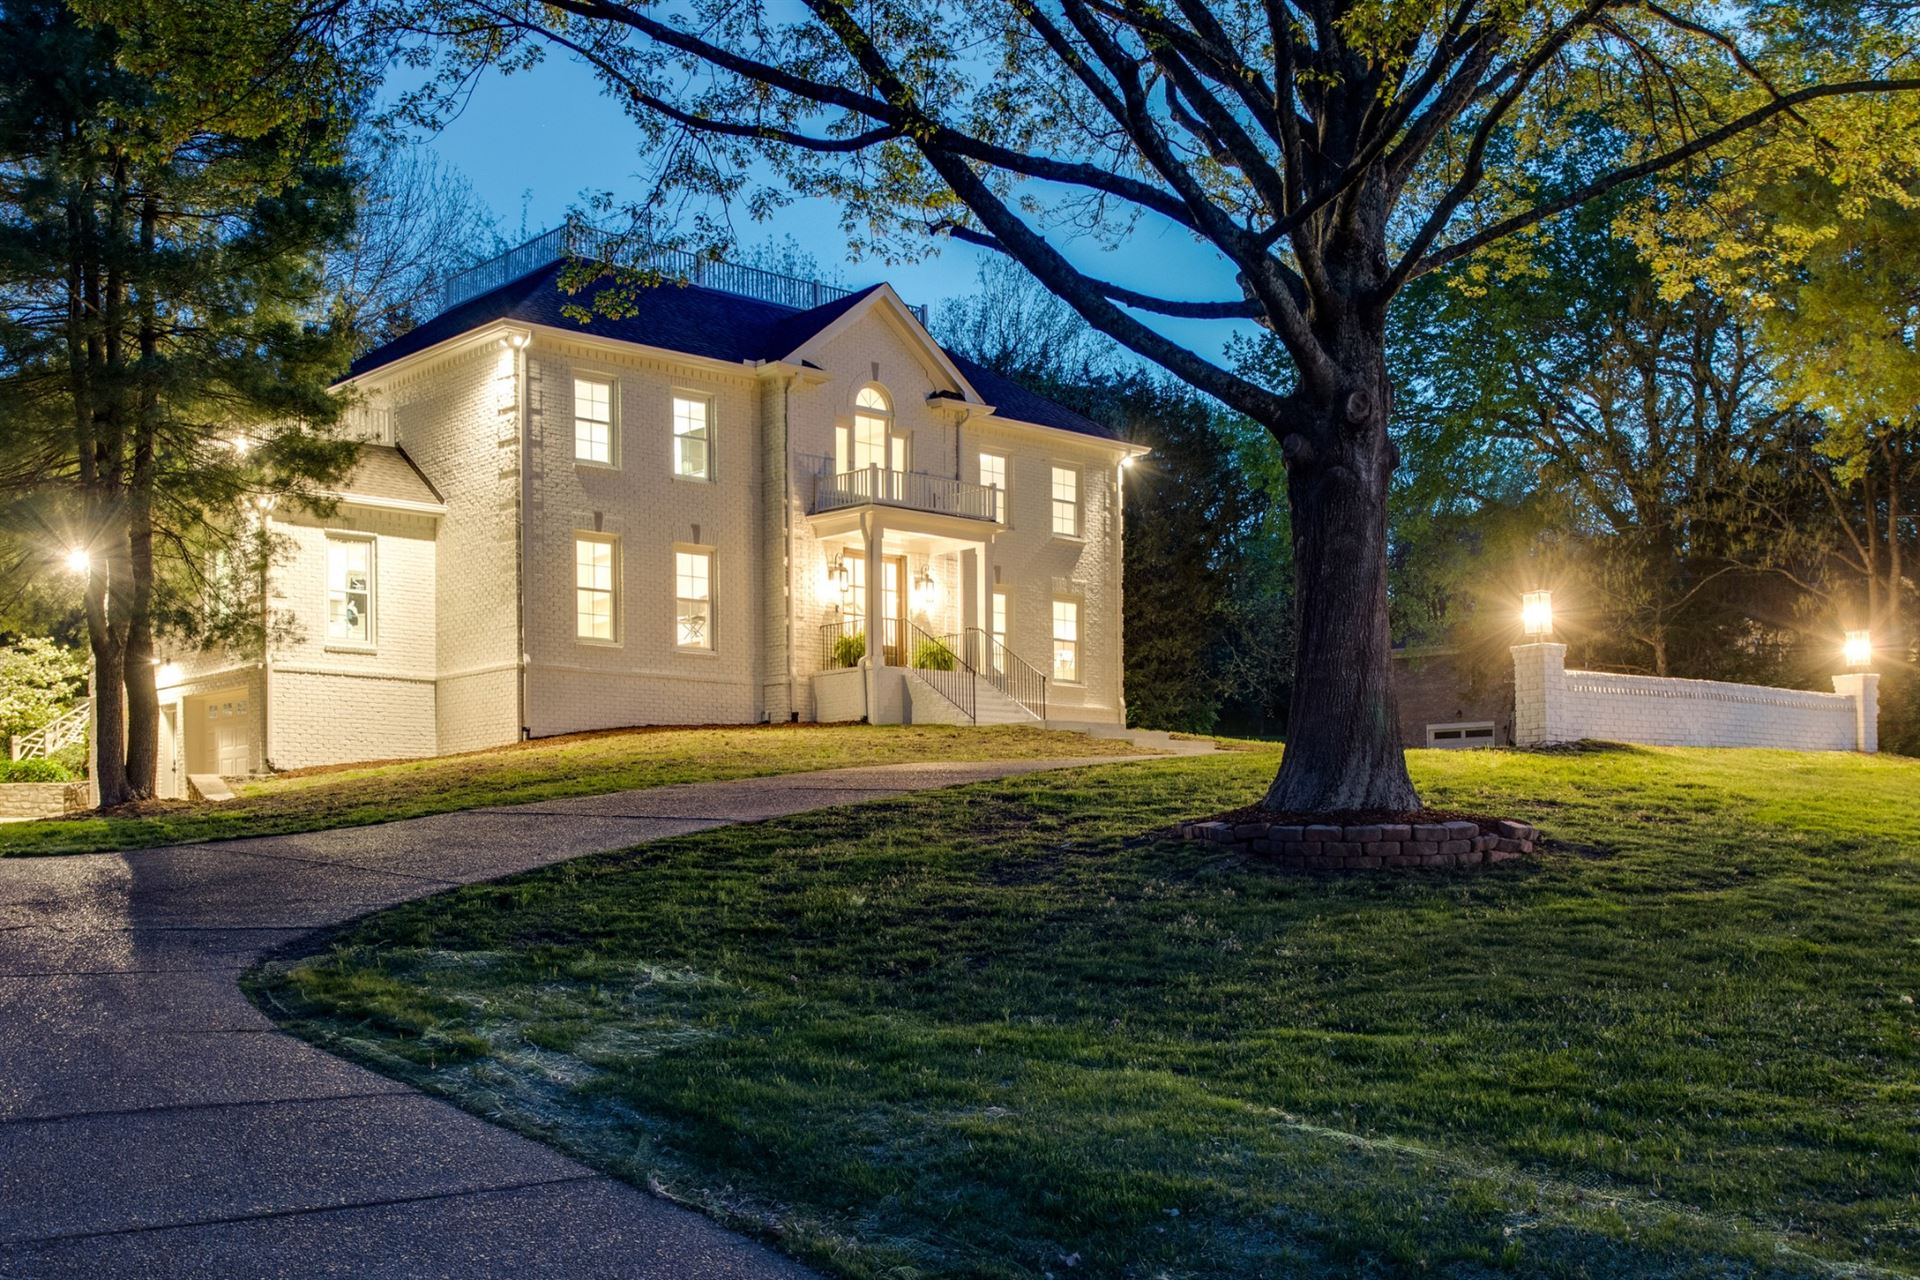 Photo of 5113 Woodland Hills Dr, Brentwood, TN 37027 (MLS # 2245047)